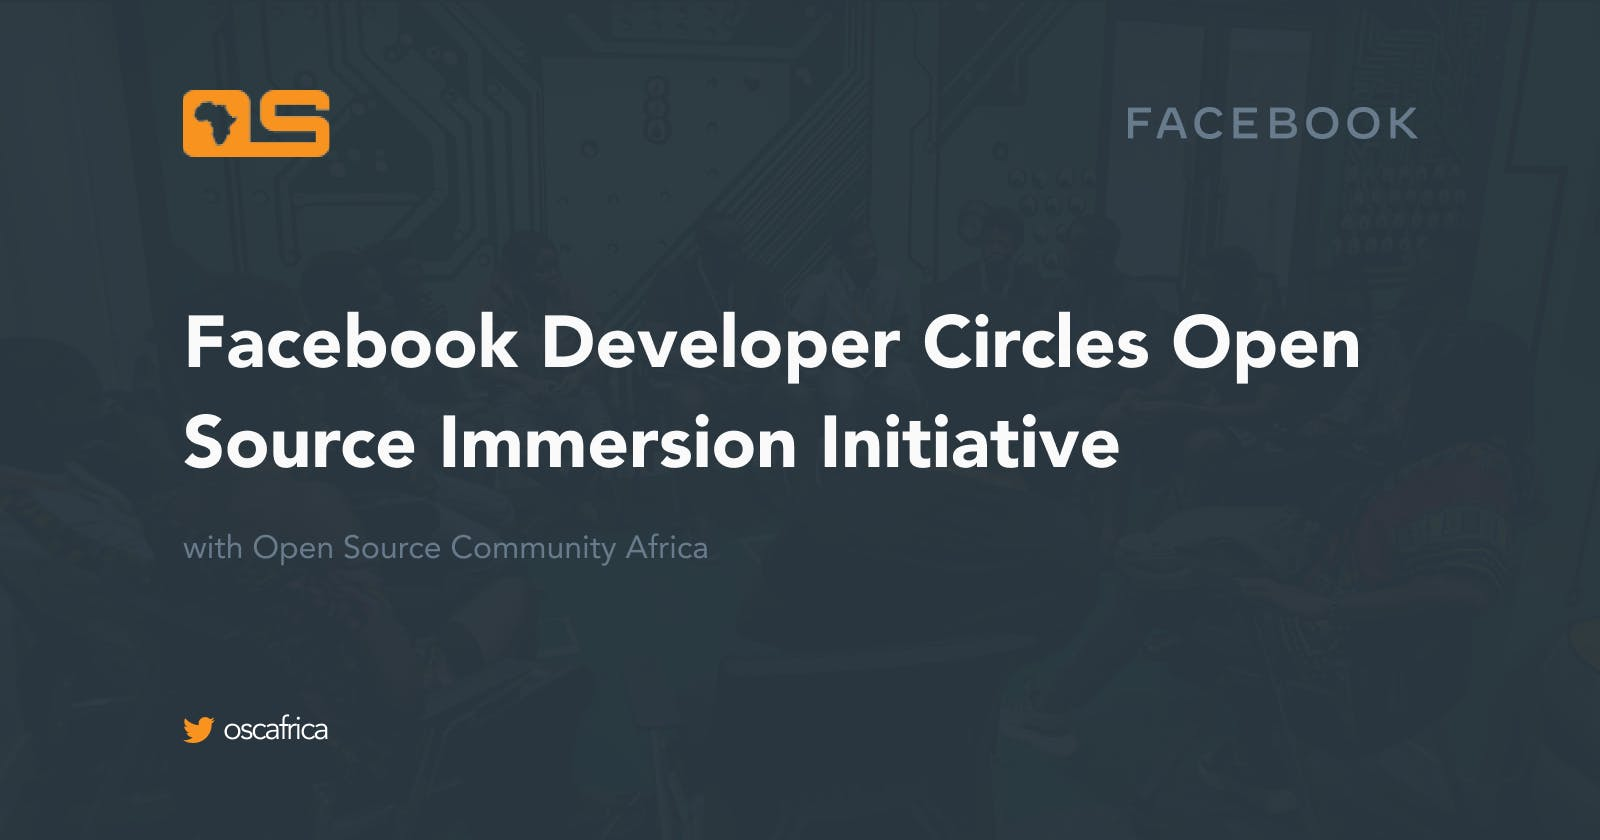 Open Source Immersion Program from Facebook 🤝 OSCA